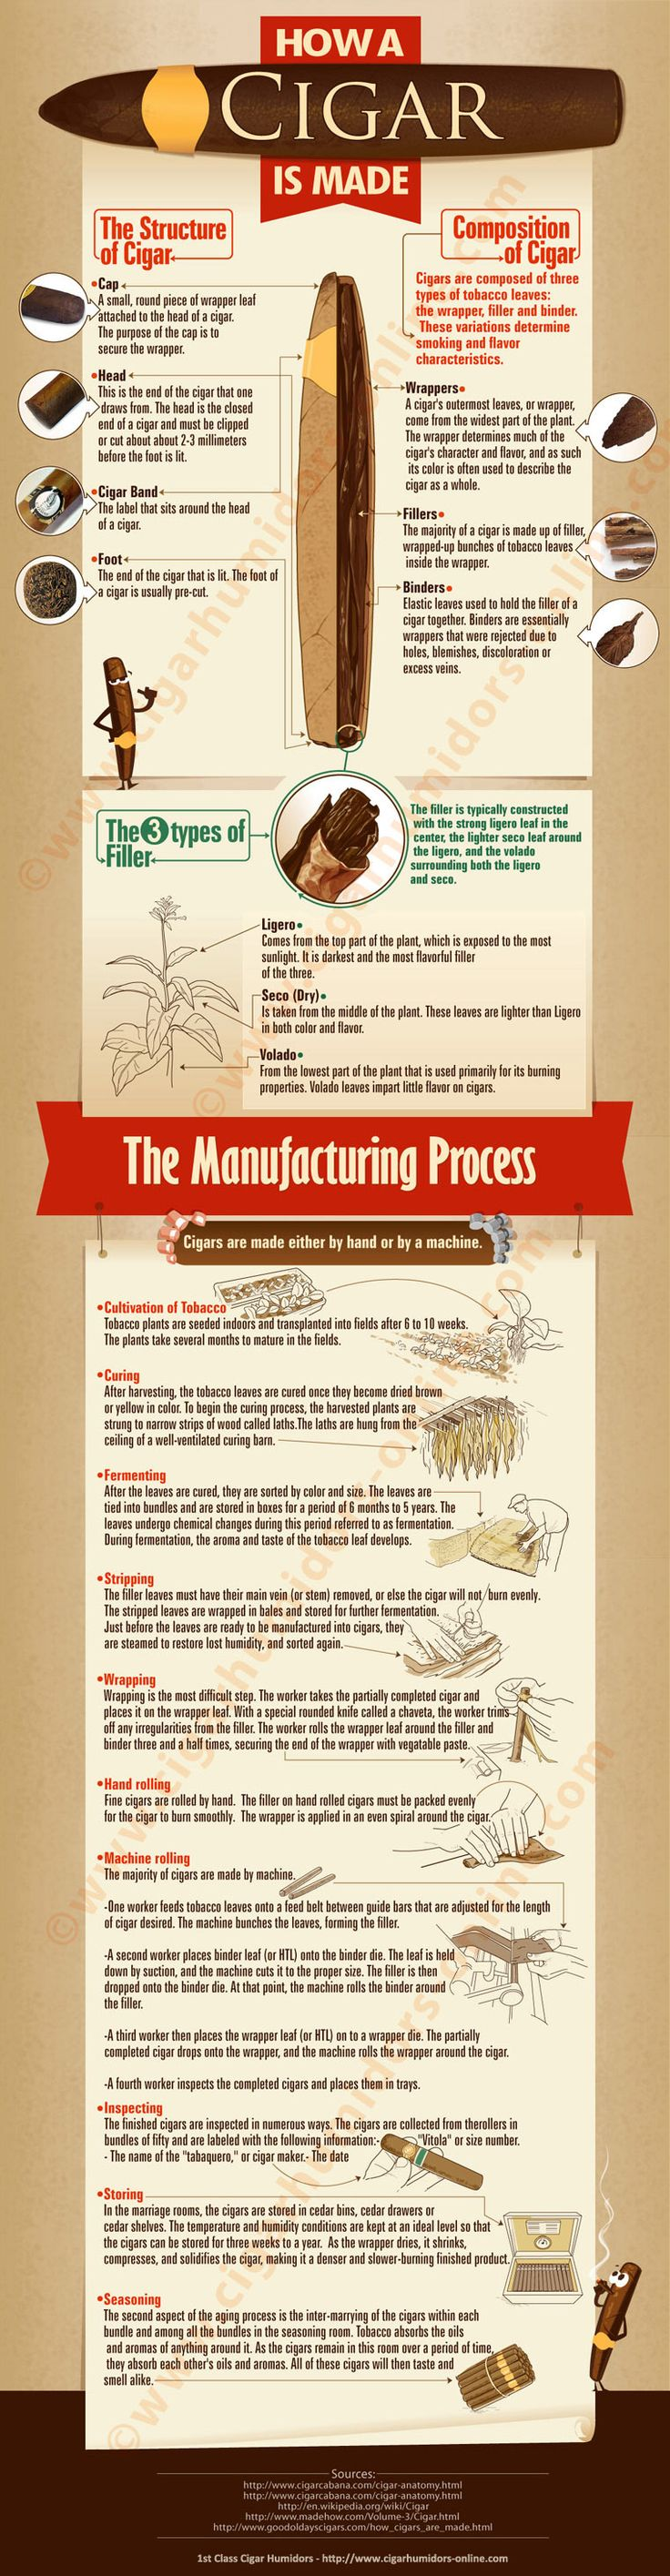 How a cigar is made #infgographic